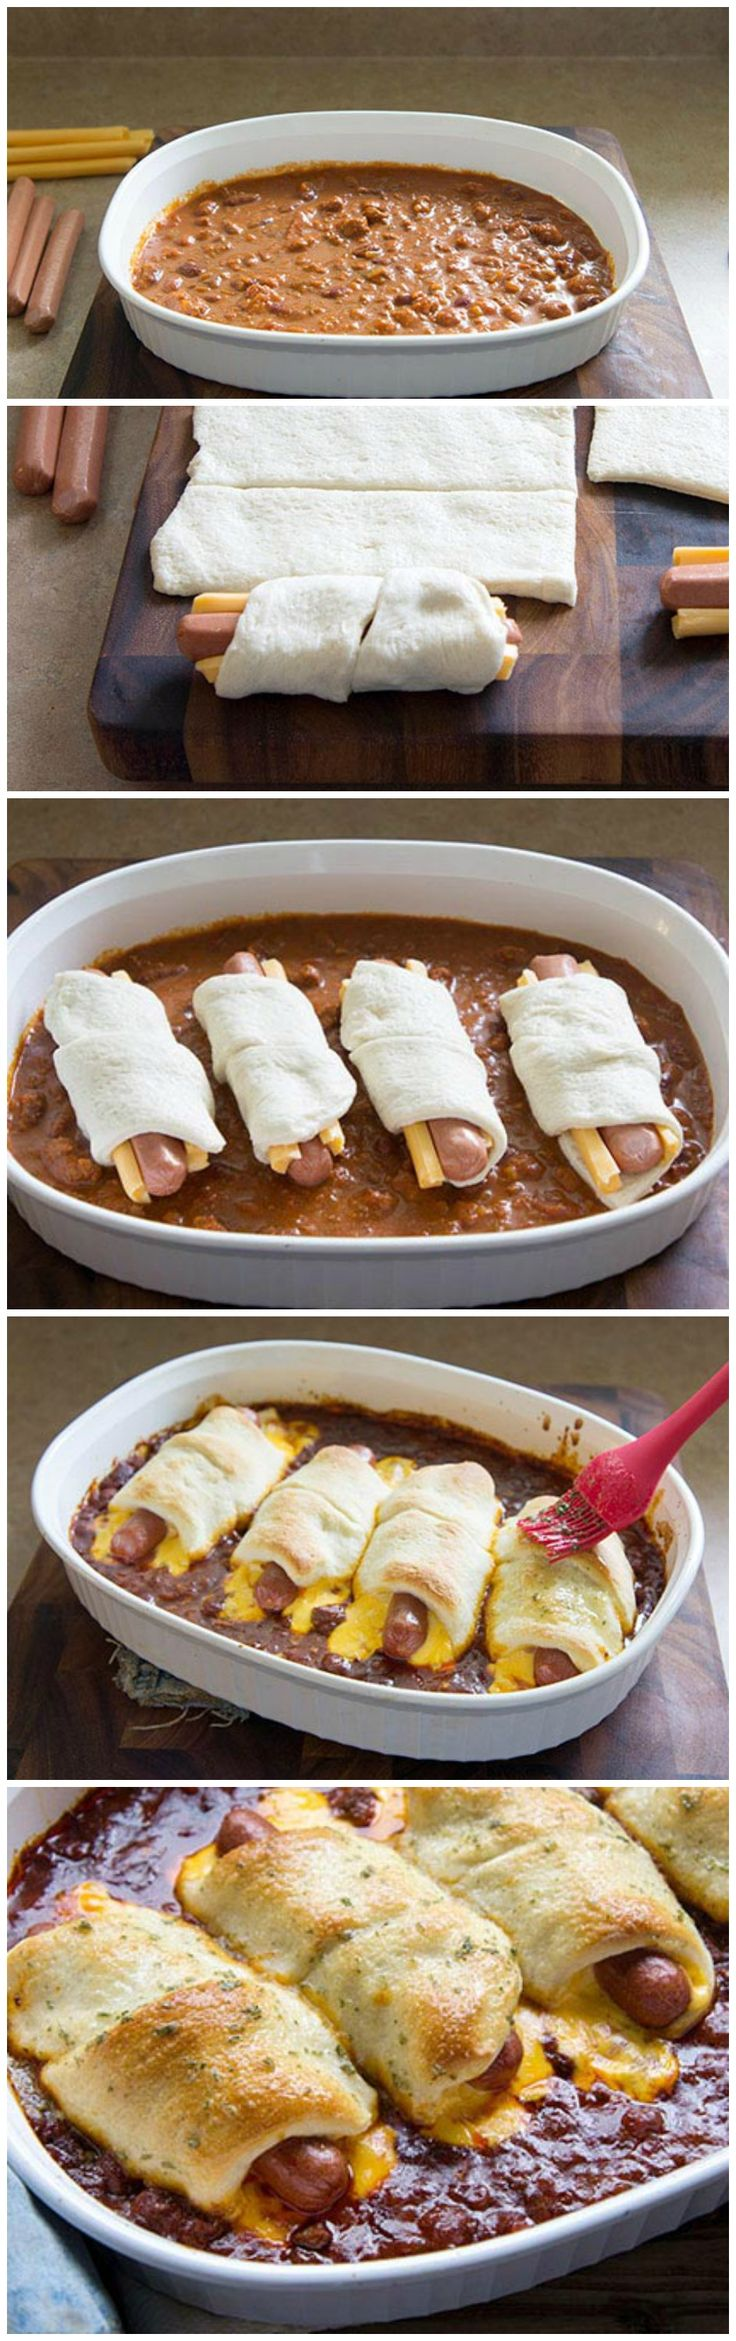 Chili Cheese Dog Bake- I would use a larger dish than shown. These need more space around them to cook the dough completely.